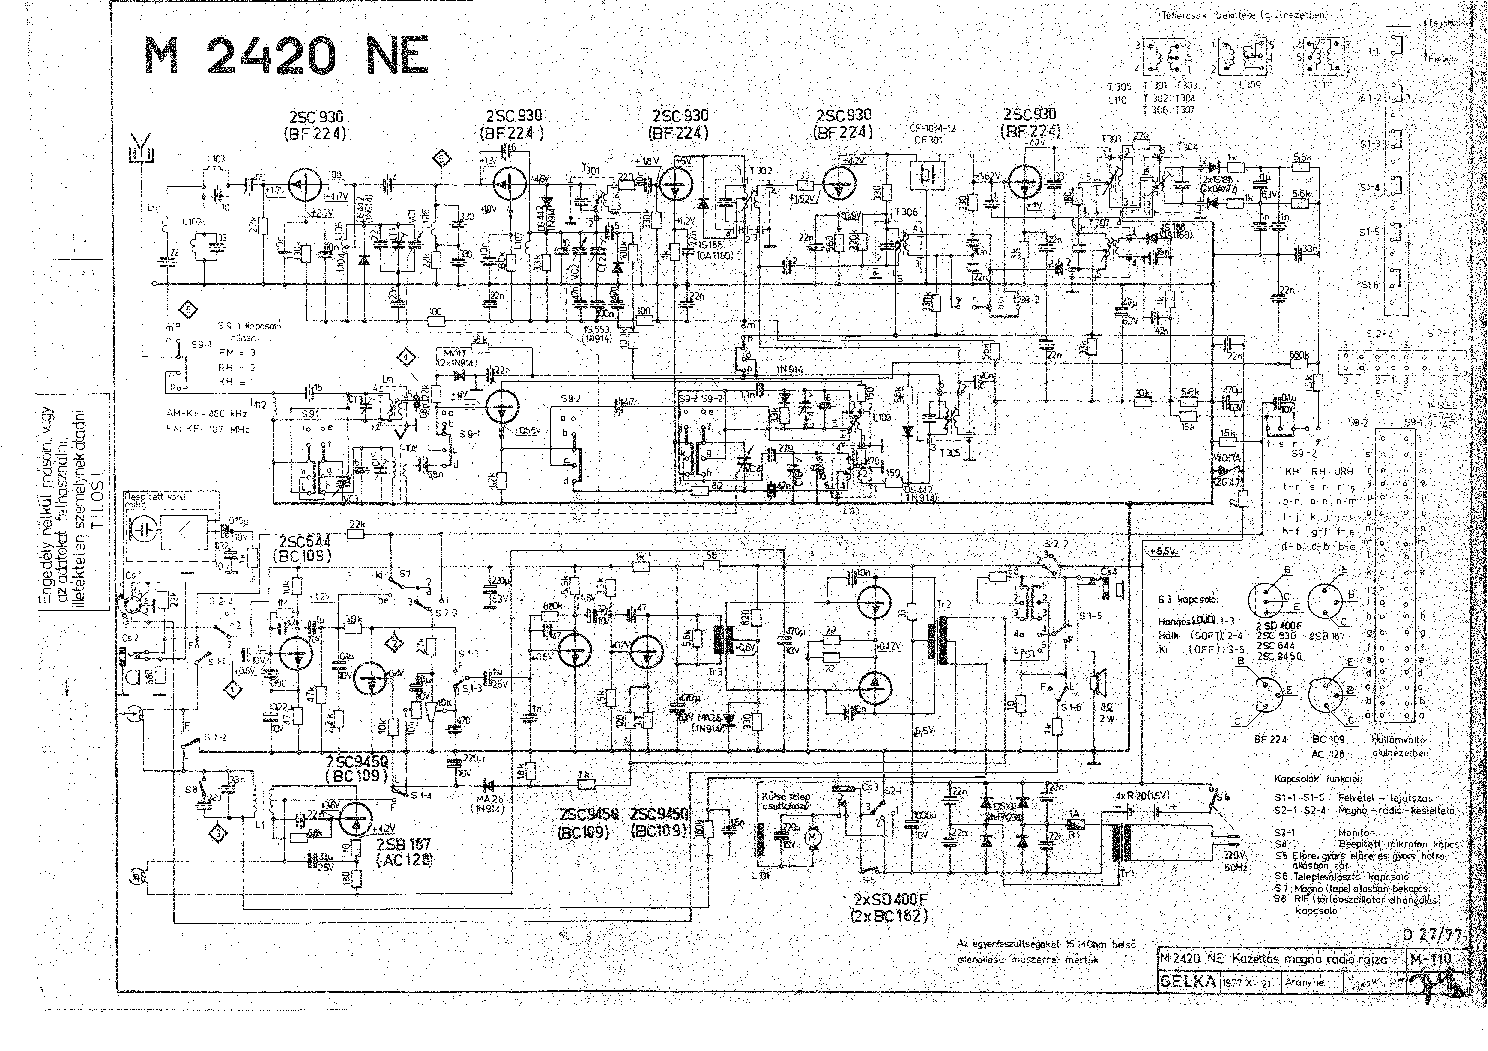 SANYO M-2420-NE SCH 2 Service Manual download, schematics